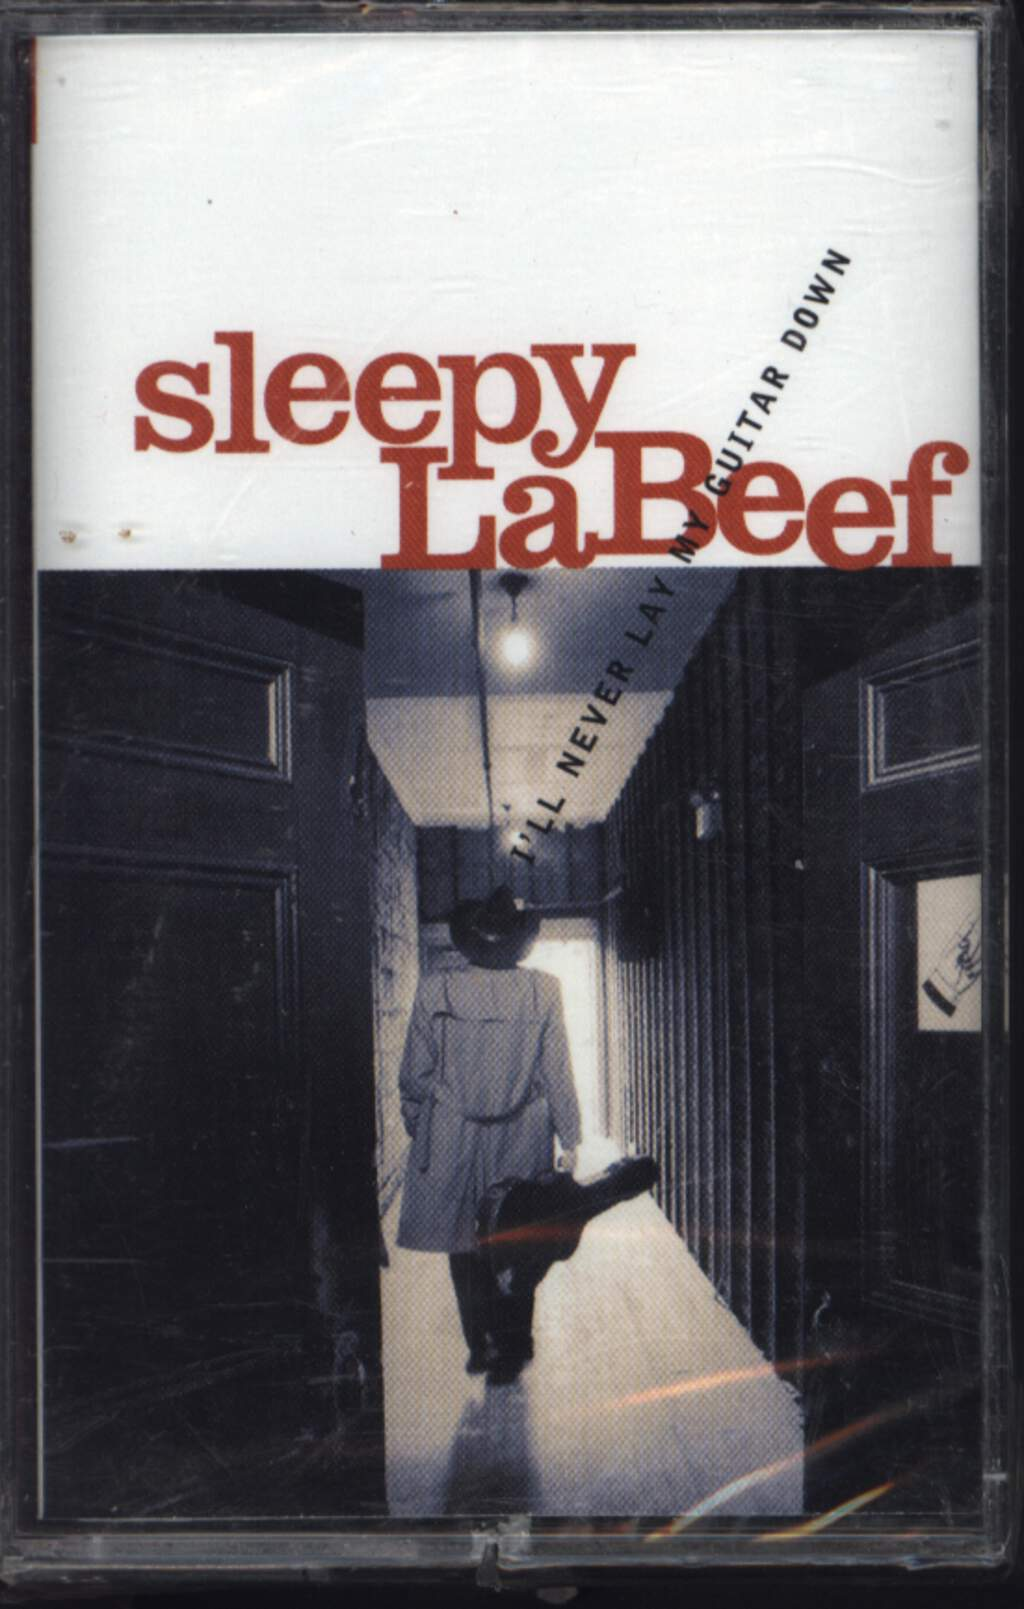 Sleepy La Beef: I'll Never Lay My Guitar Down, Tape